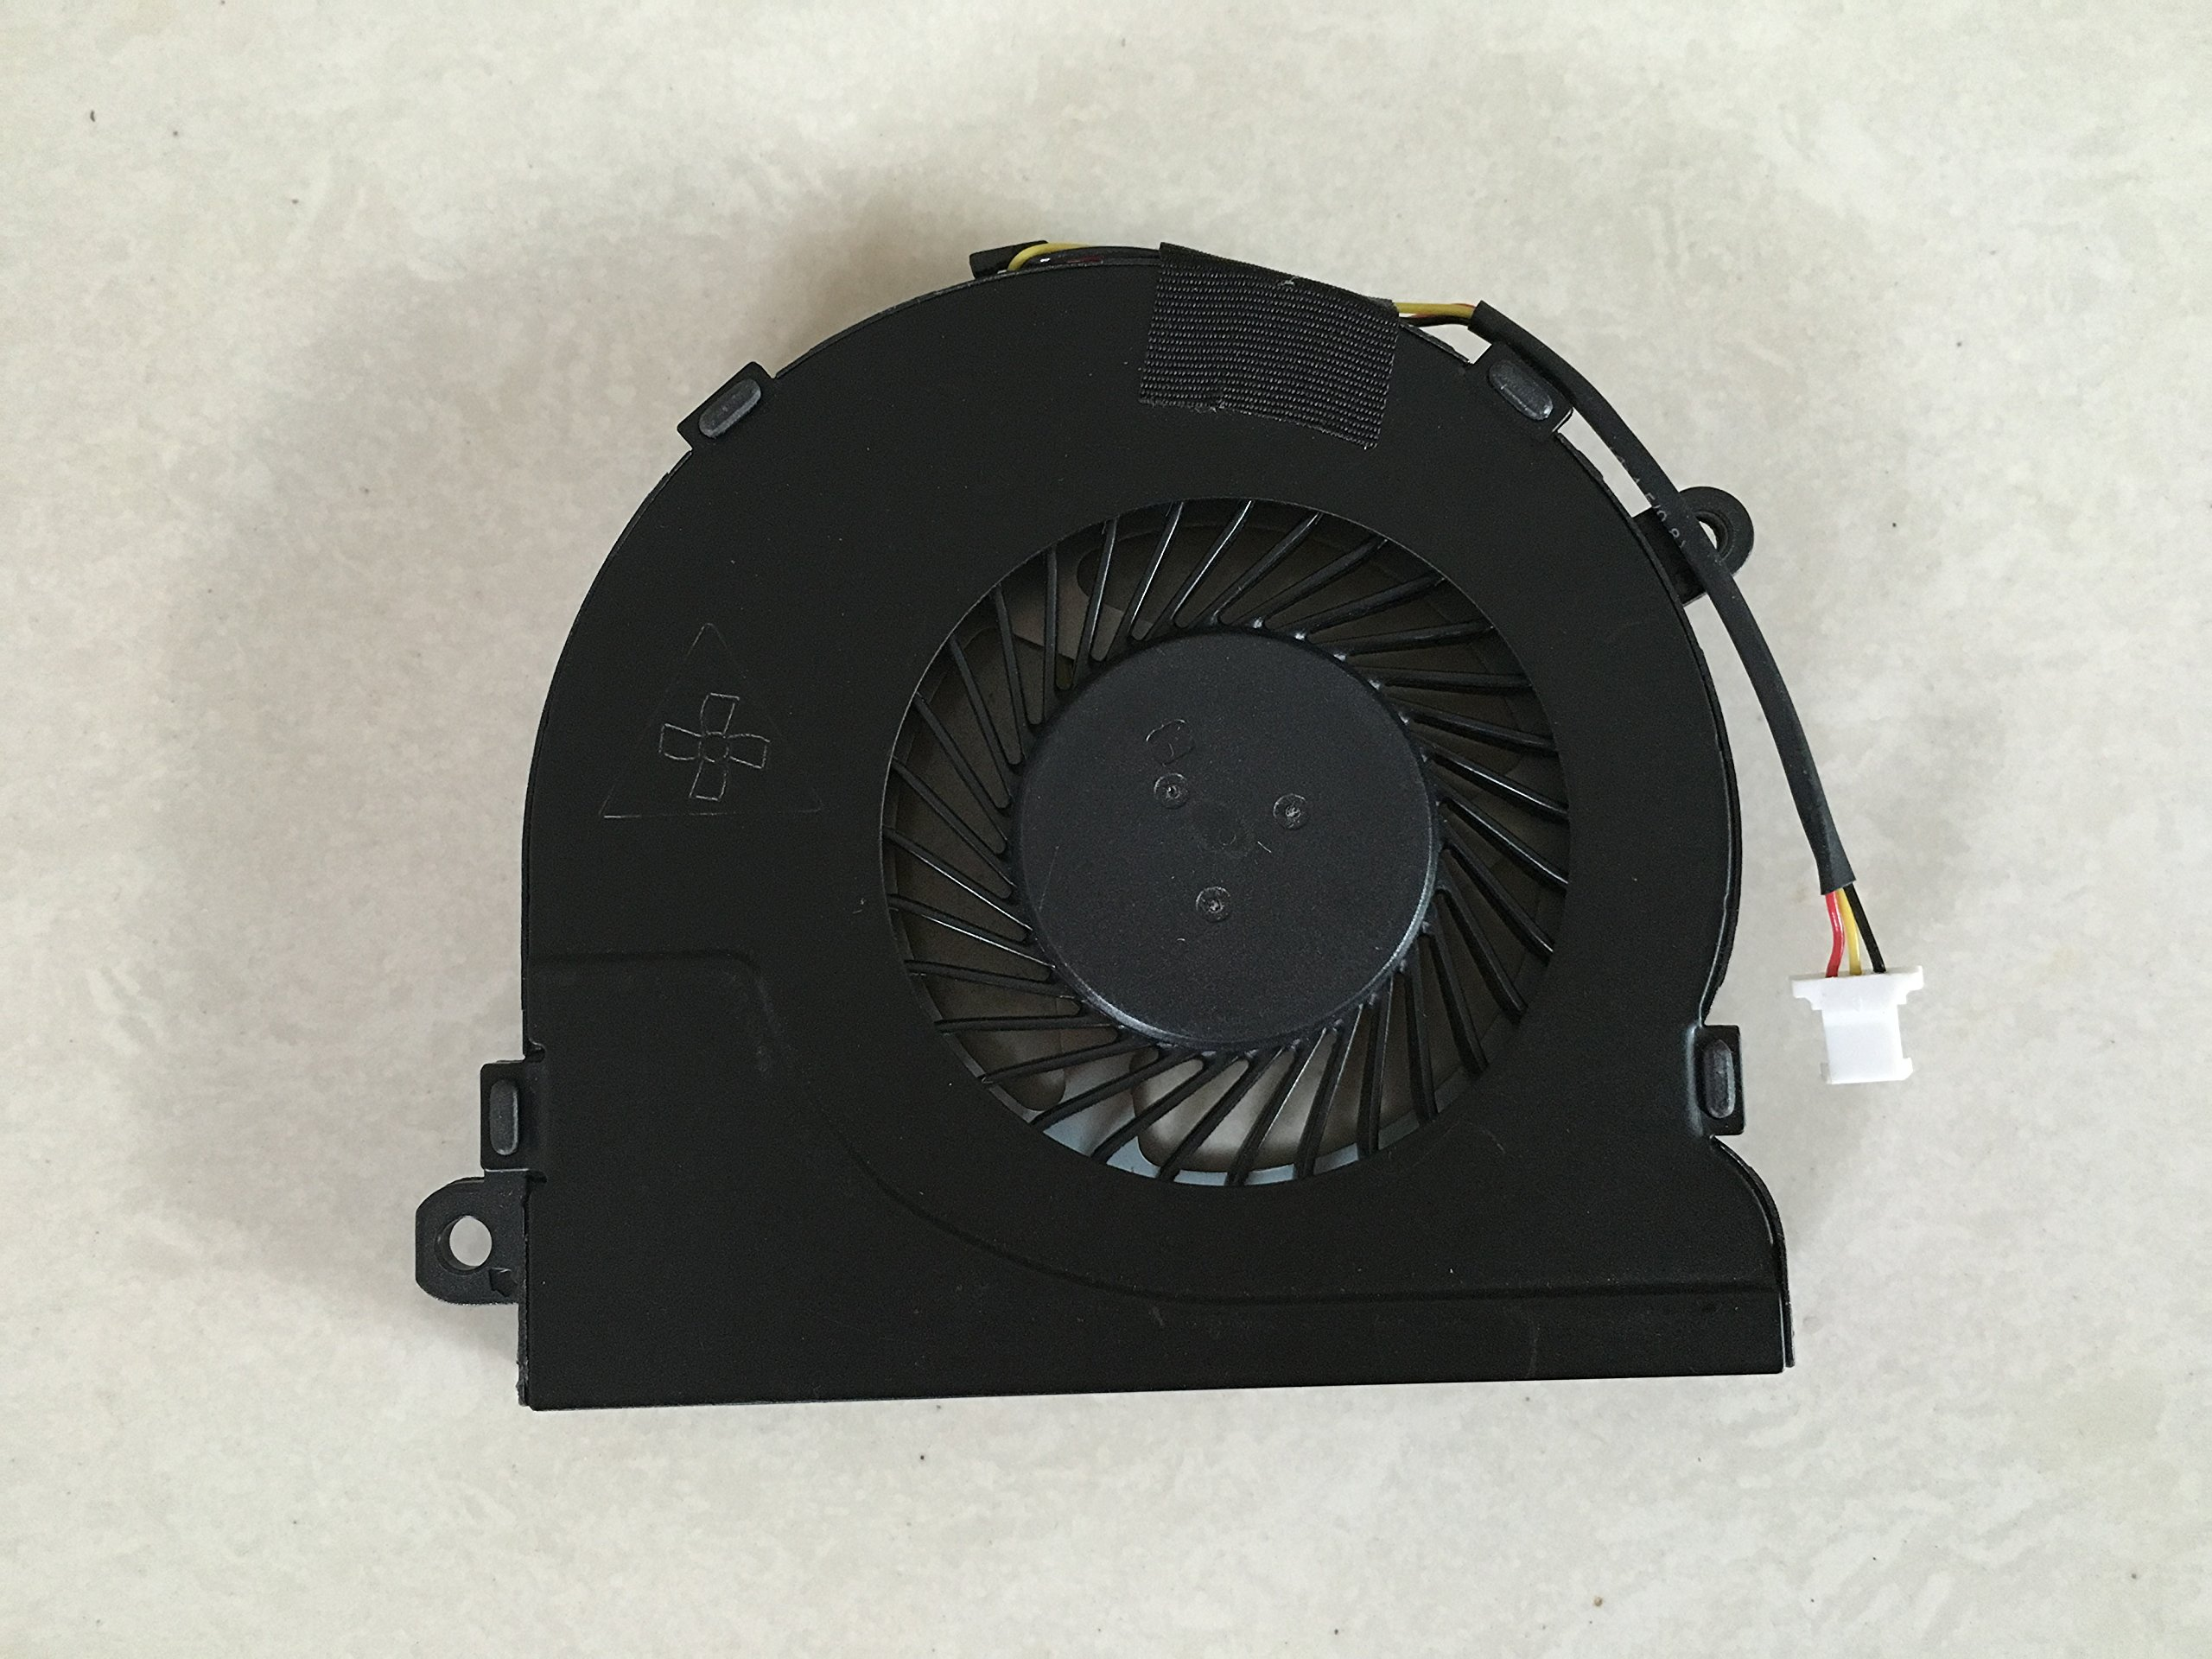 HK-part Replacement Fan for Dell Inspiron 15 5547 Inspiron 15 5548 Inspiron 5447 5448 5540 5542 5543 5545 5547 5548 Series Cpu Cooling Fan DP/N 03RRG4 CN-03RRG4